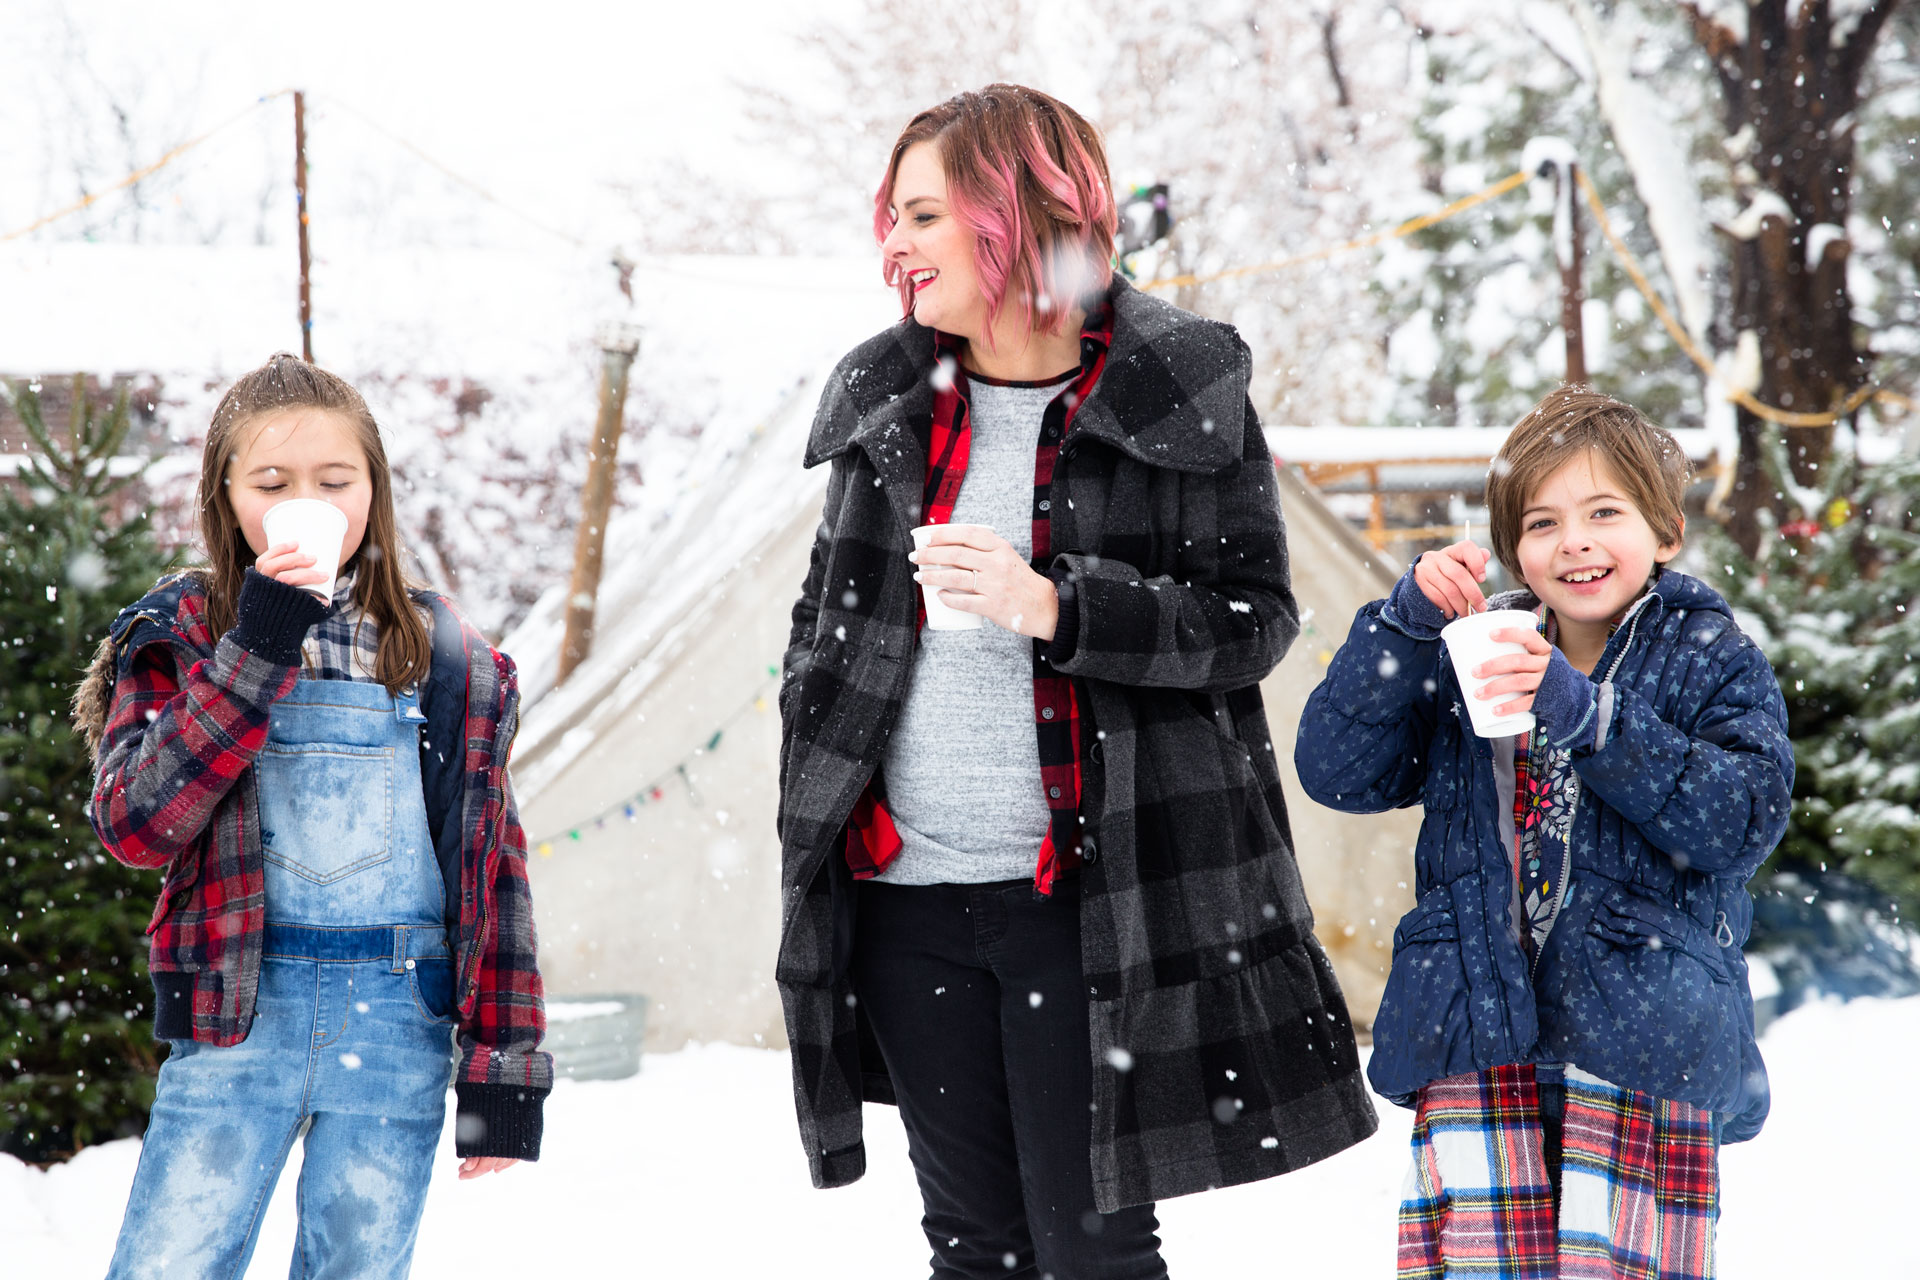 Mom and two daughters sipping hot chocolate while getting their Christmas tree at a farm and its snowing